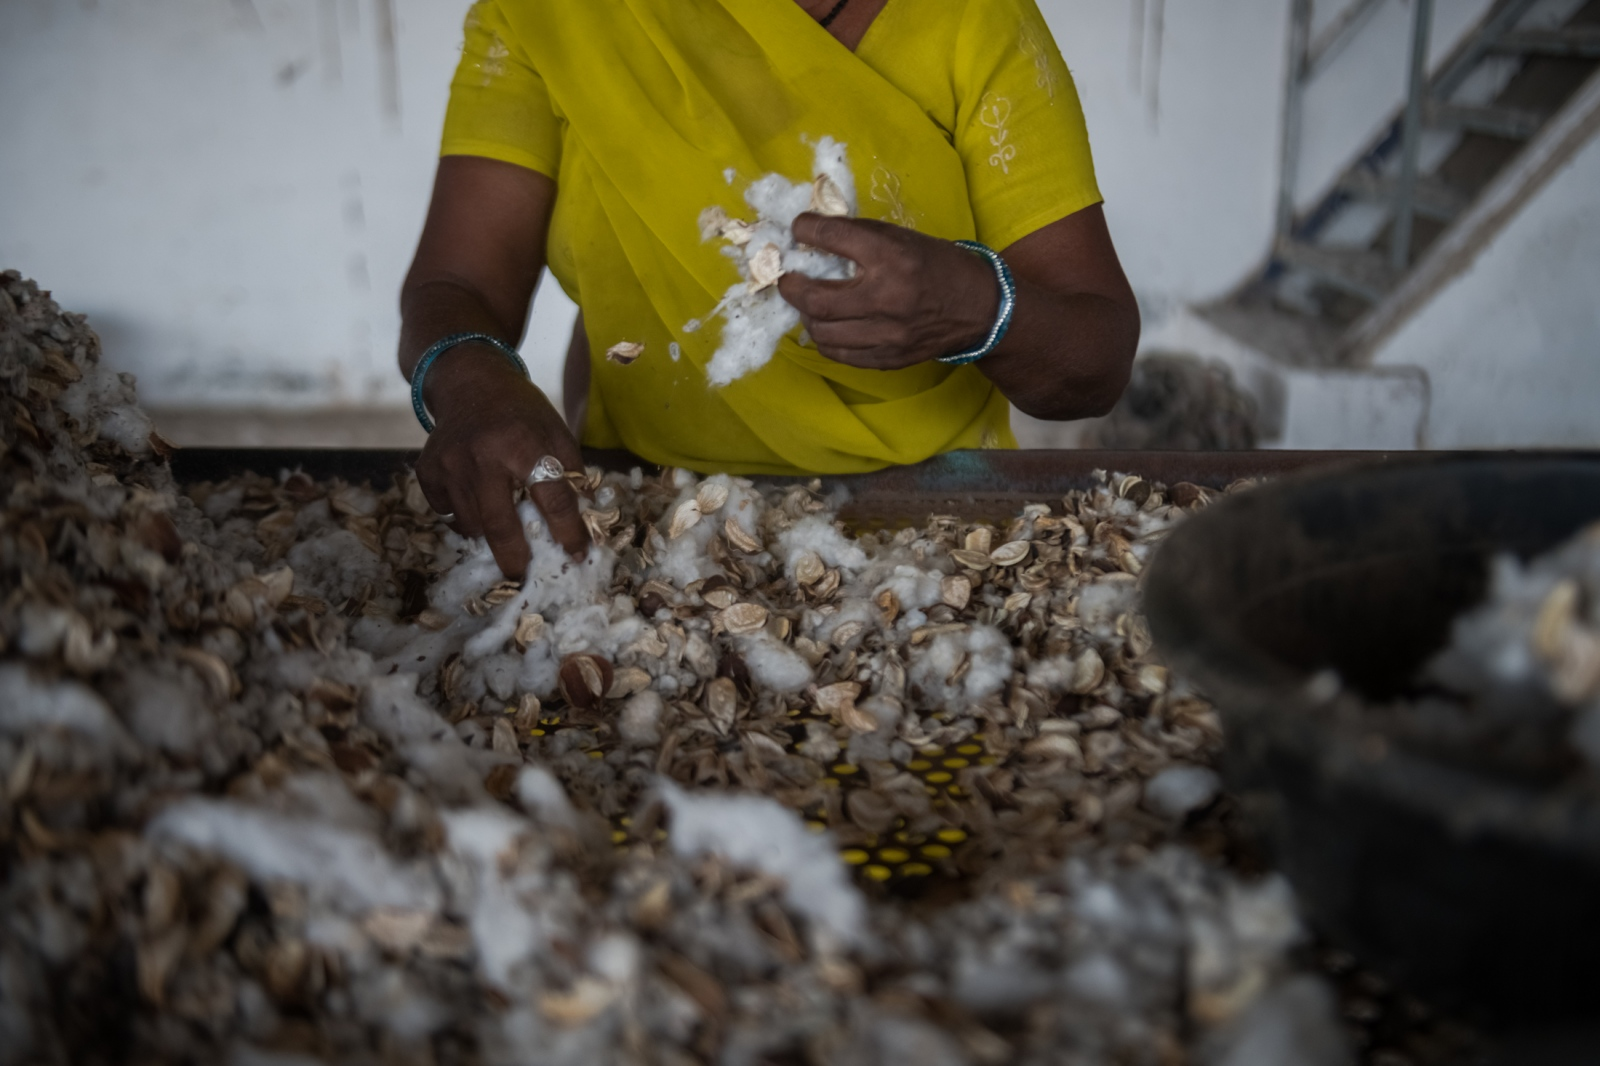 Somu Raju separates raw cotton from husks at the Radhe Industries cotton-ginning factory